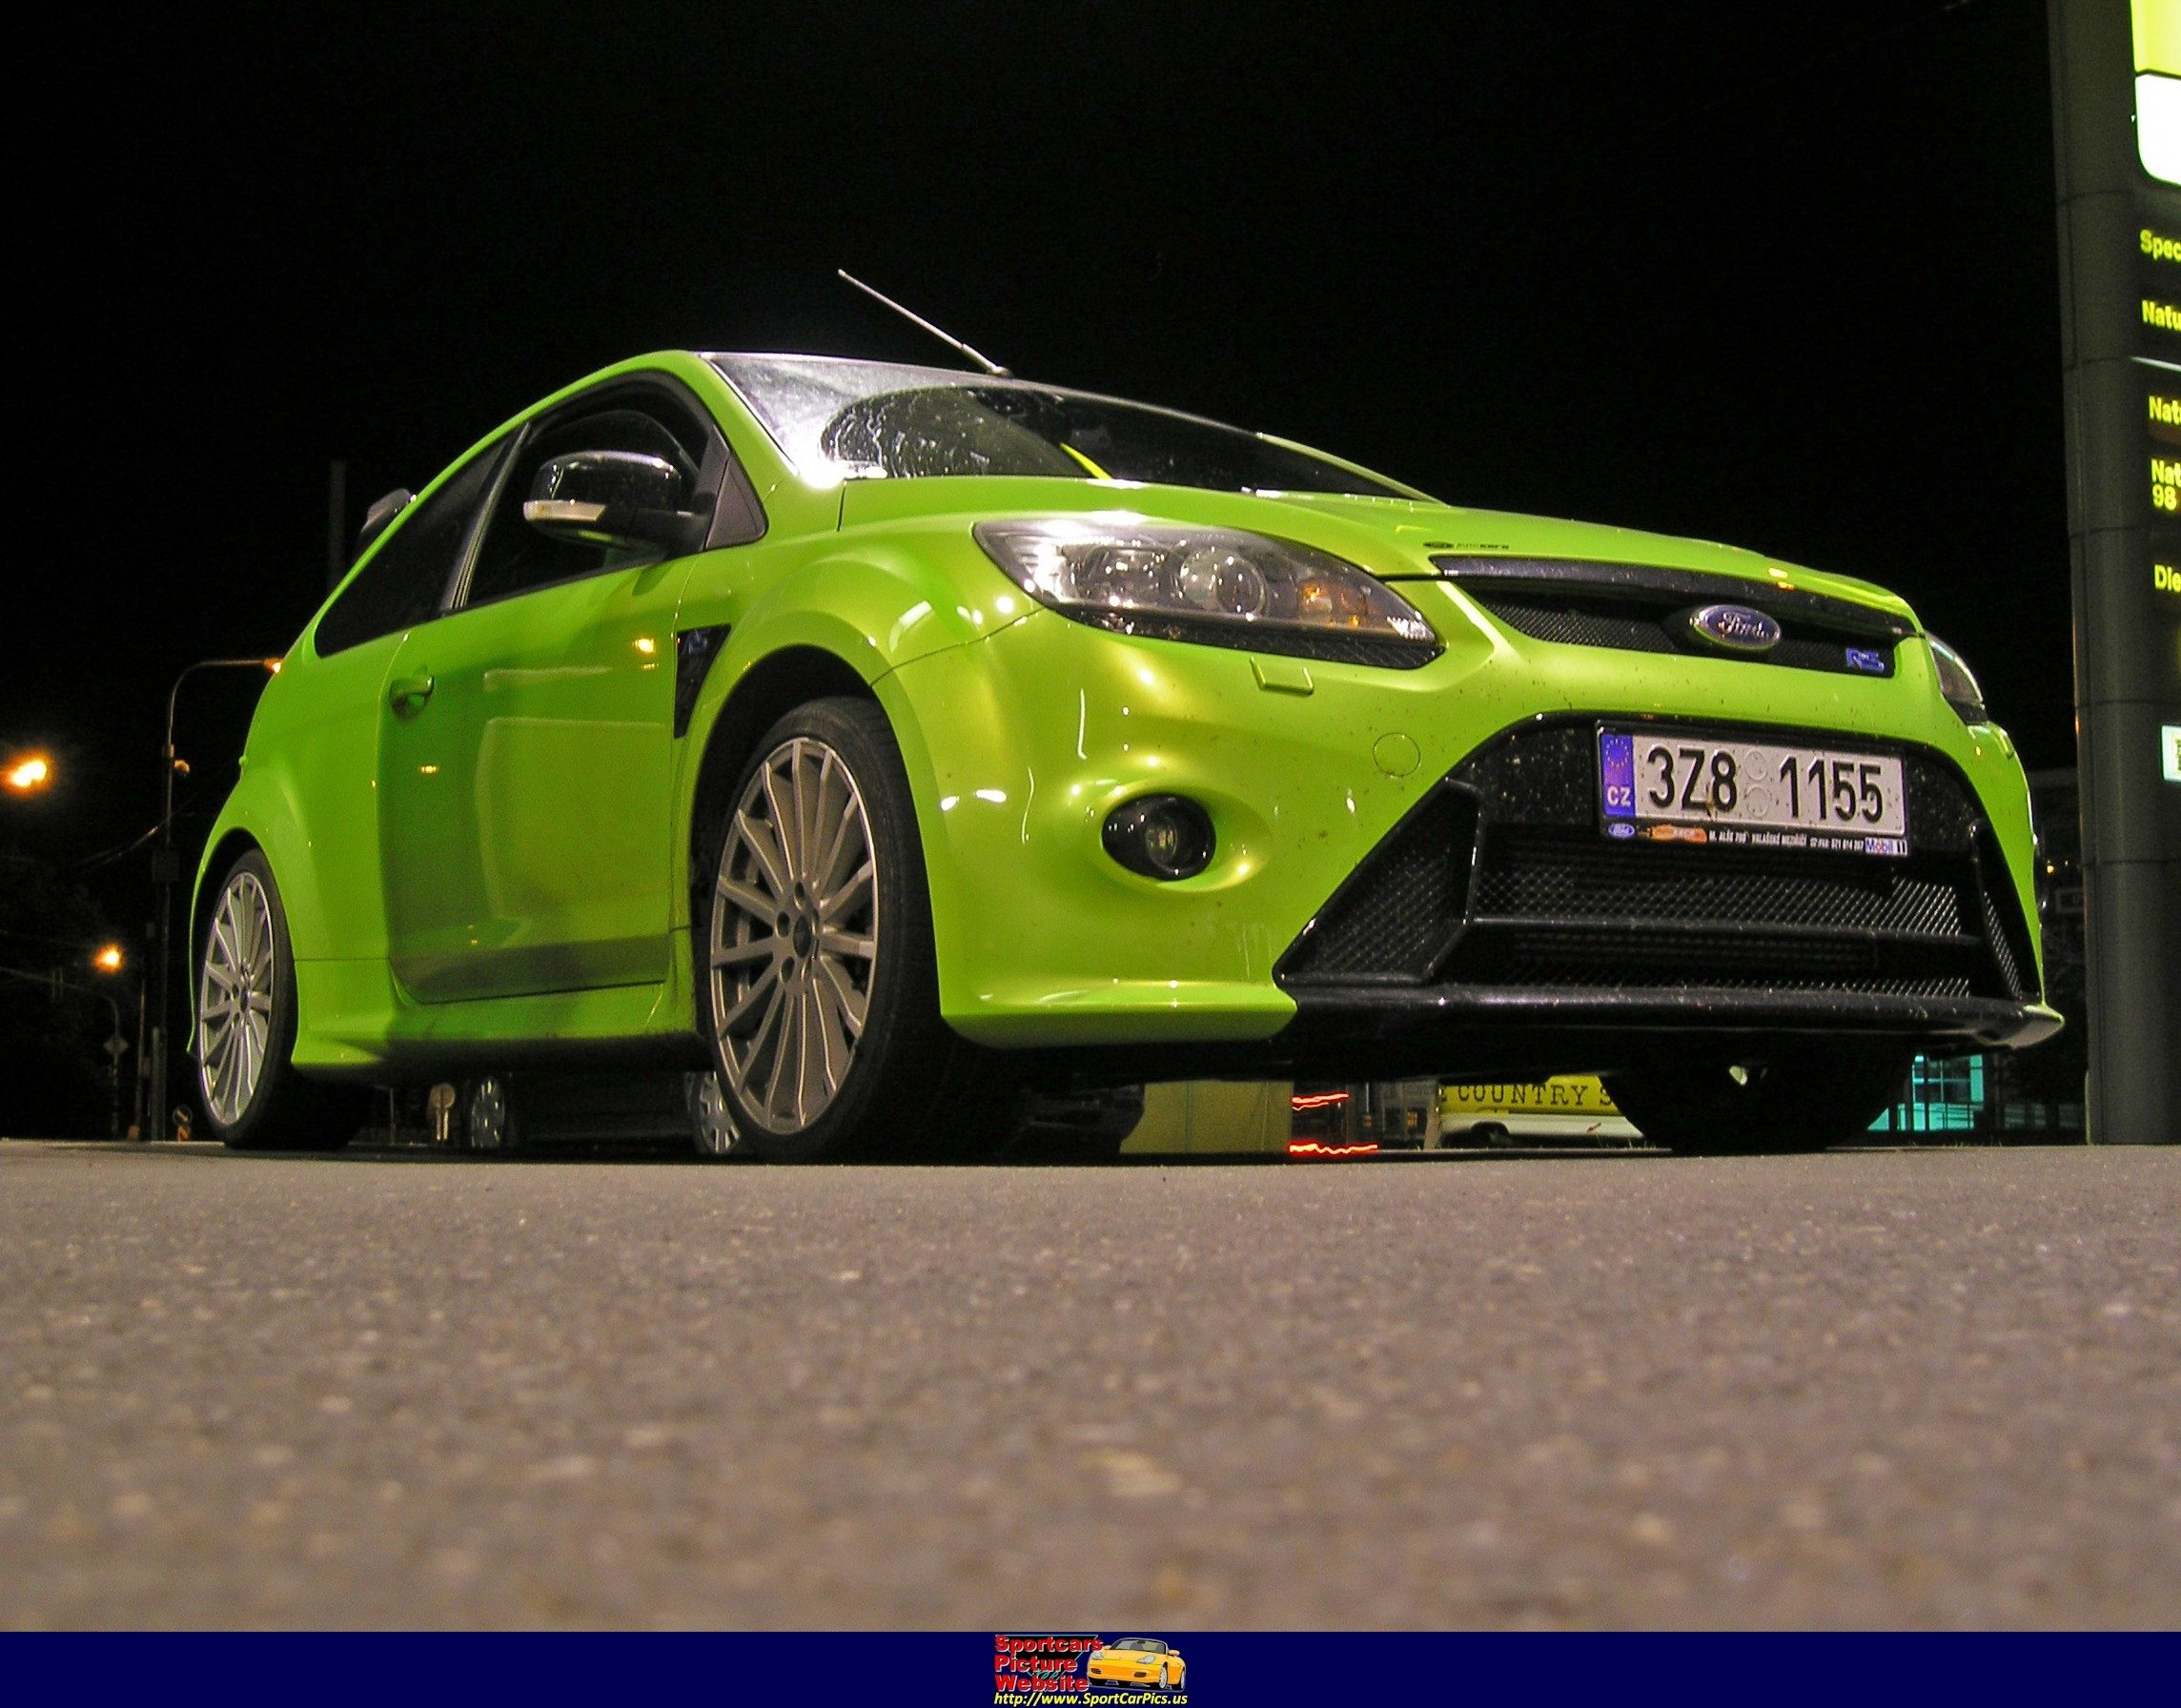 Ford - Focus RS - 72159 - Ford Focus RS - ID: 72159